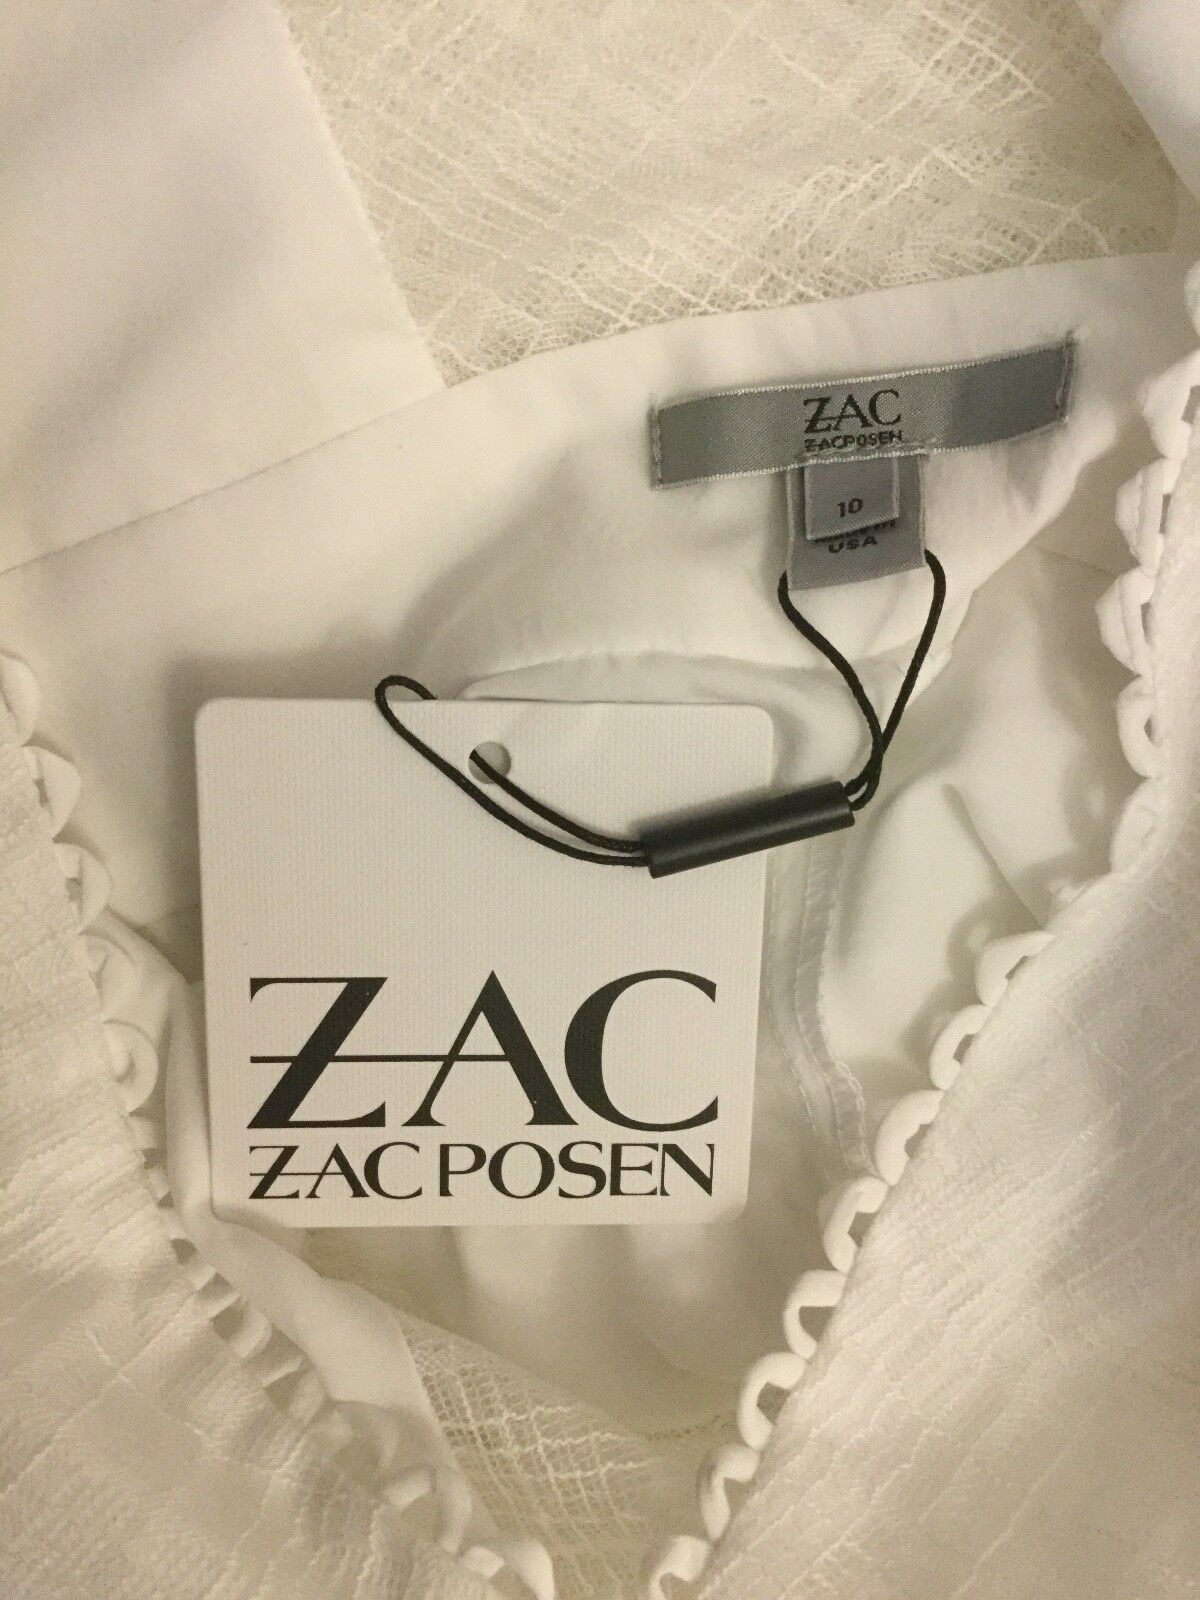 NWT NWT NWT  ZAC Zac Posen Annabelle Dress  525 size 10 Made in US f77e0b